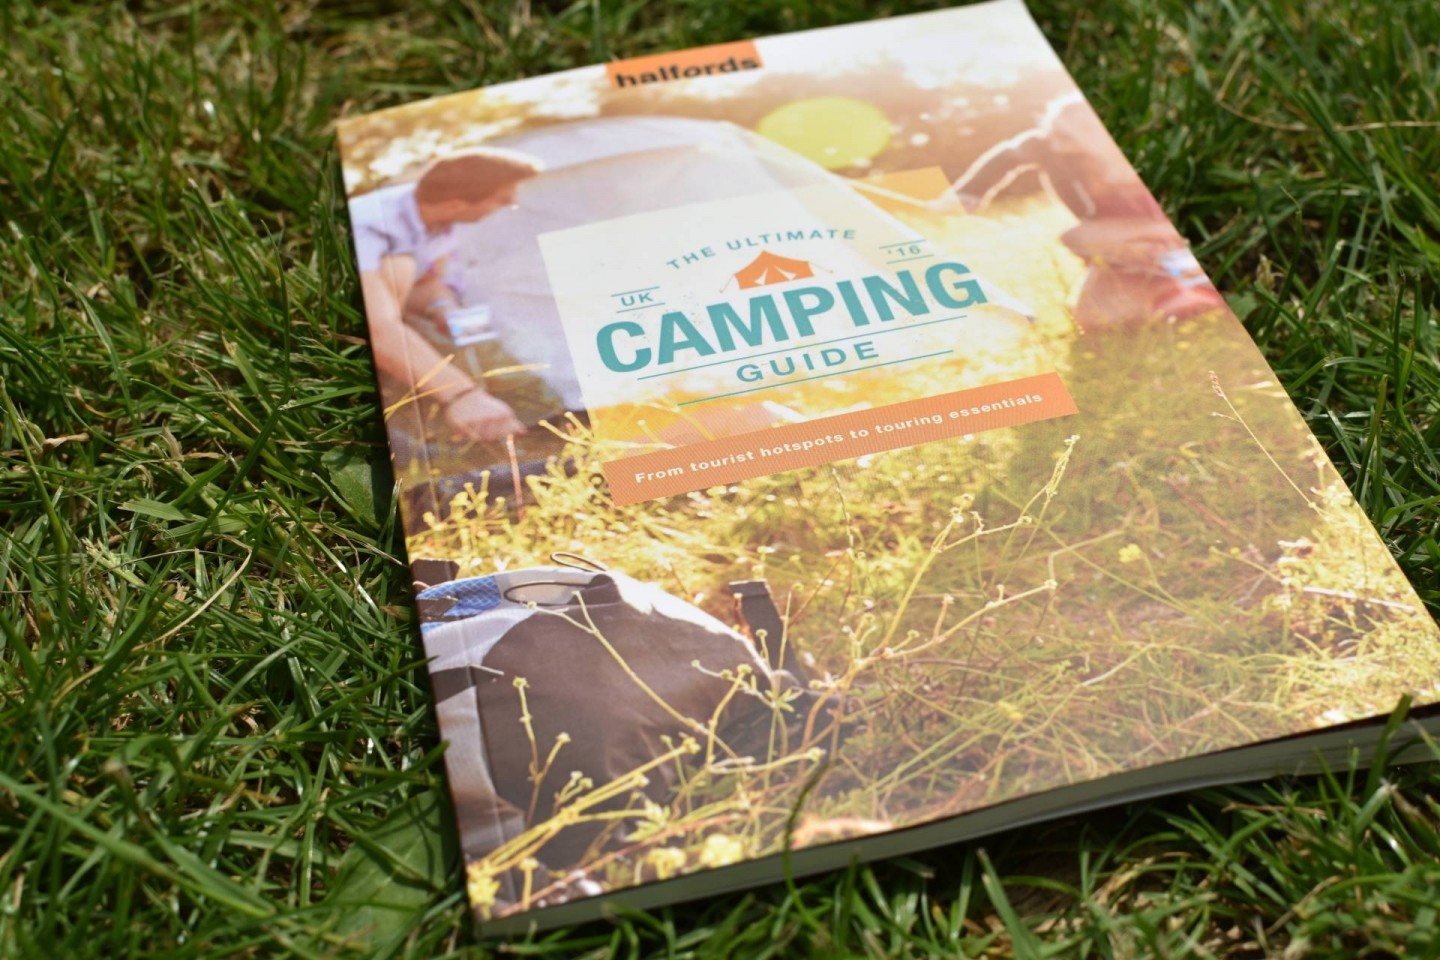 so you want to go camping? so do I but i need all the camping tips i can get!